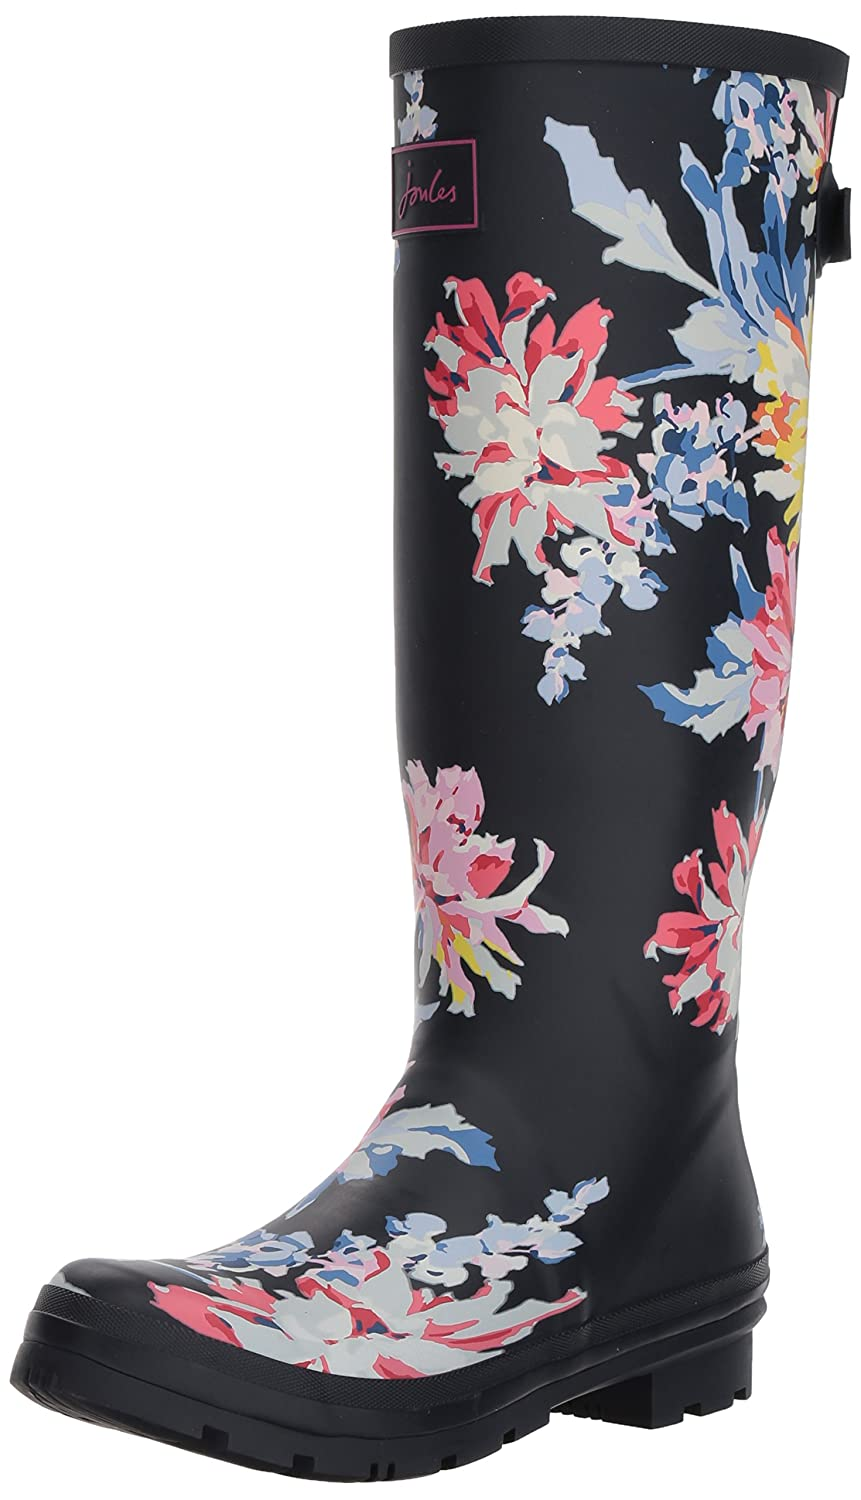 Joules Women's Wellyprint Rain Boot B073XJP9RW 5 B(M) US|Navy Whitstable Floral